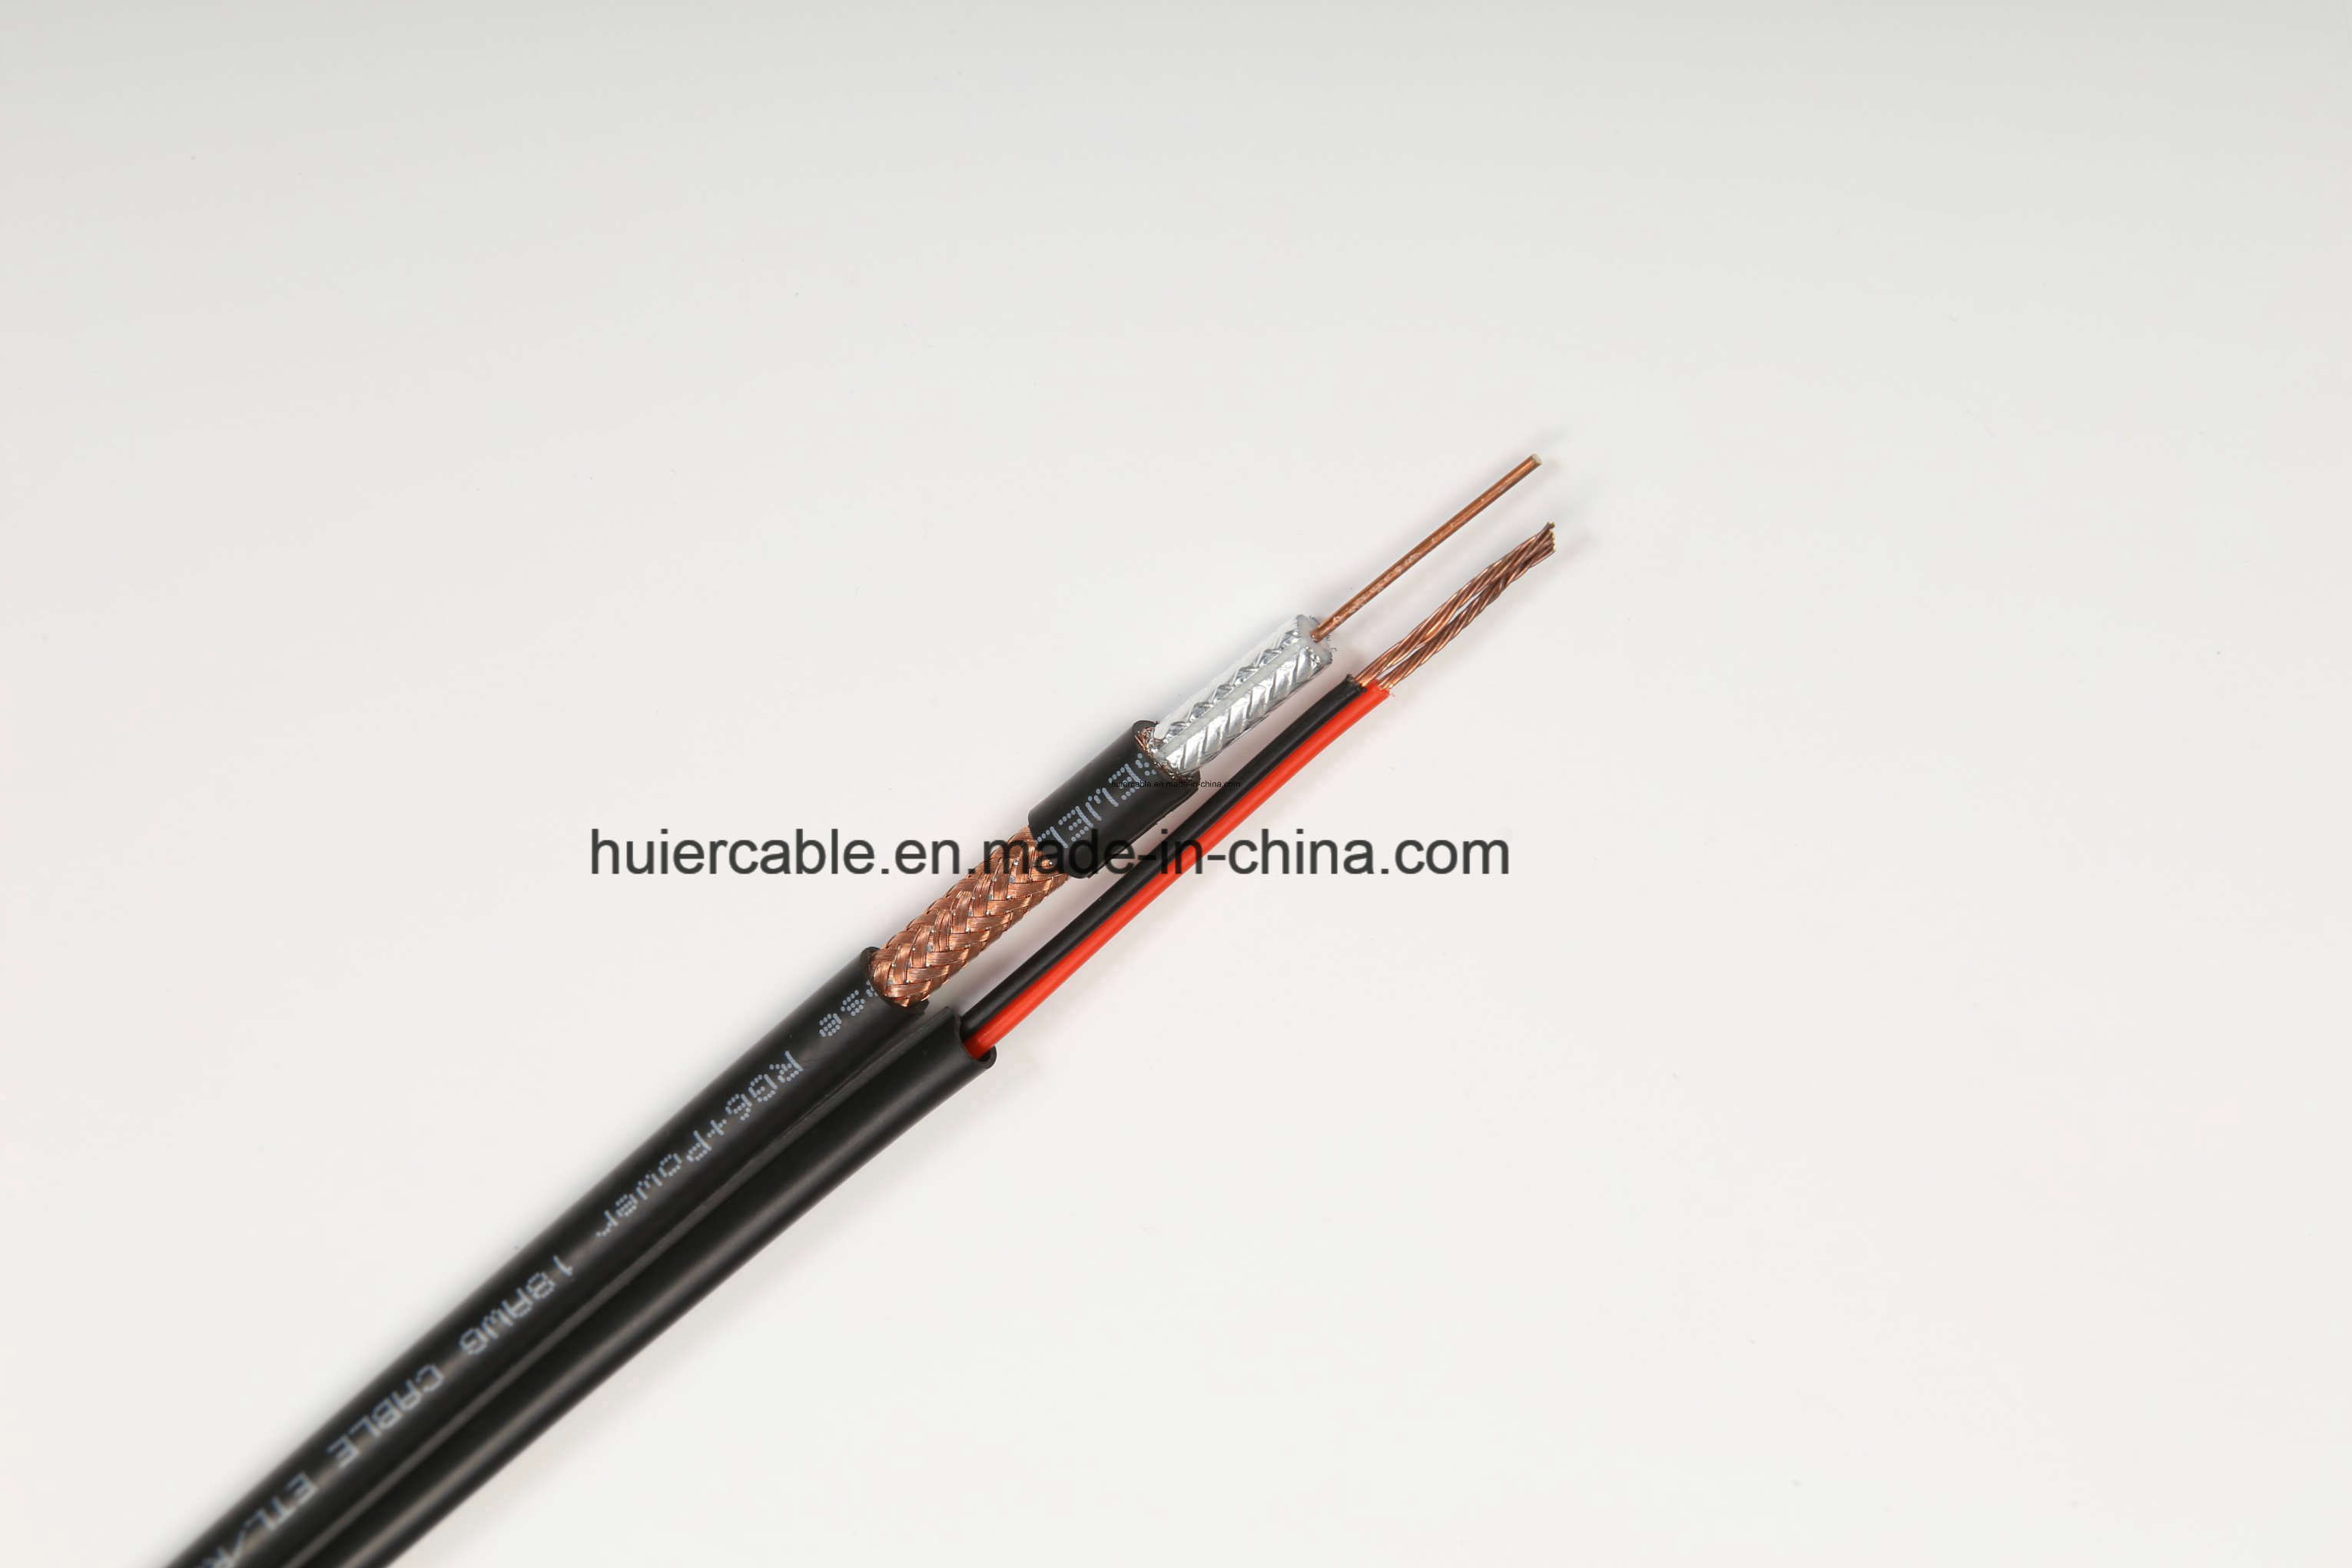 Camera RG6 CCTV Rg59 Cable for Security System with 18AWG/2 Power Wires